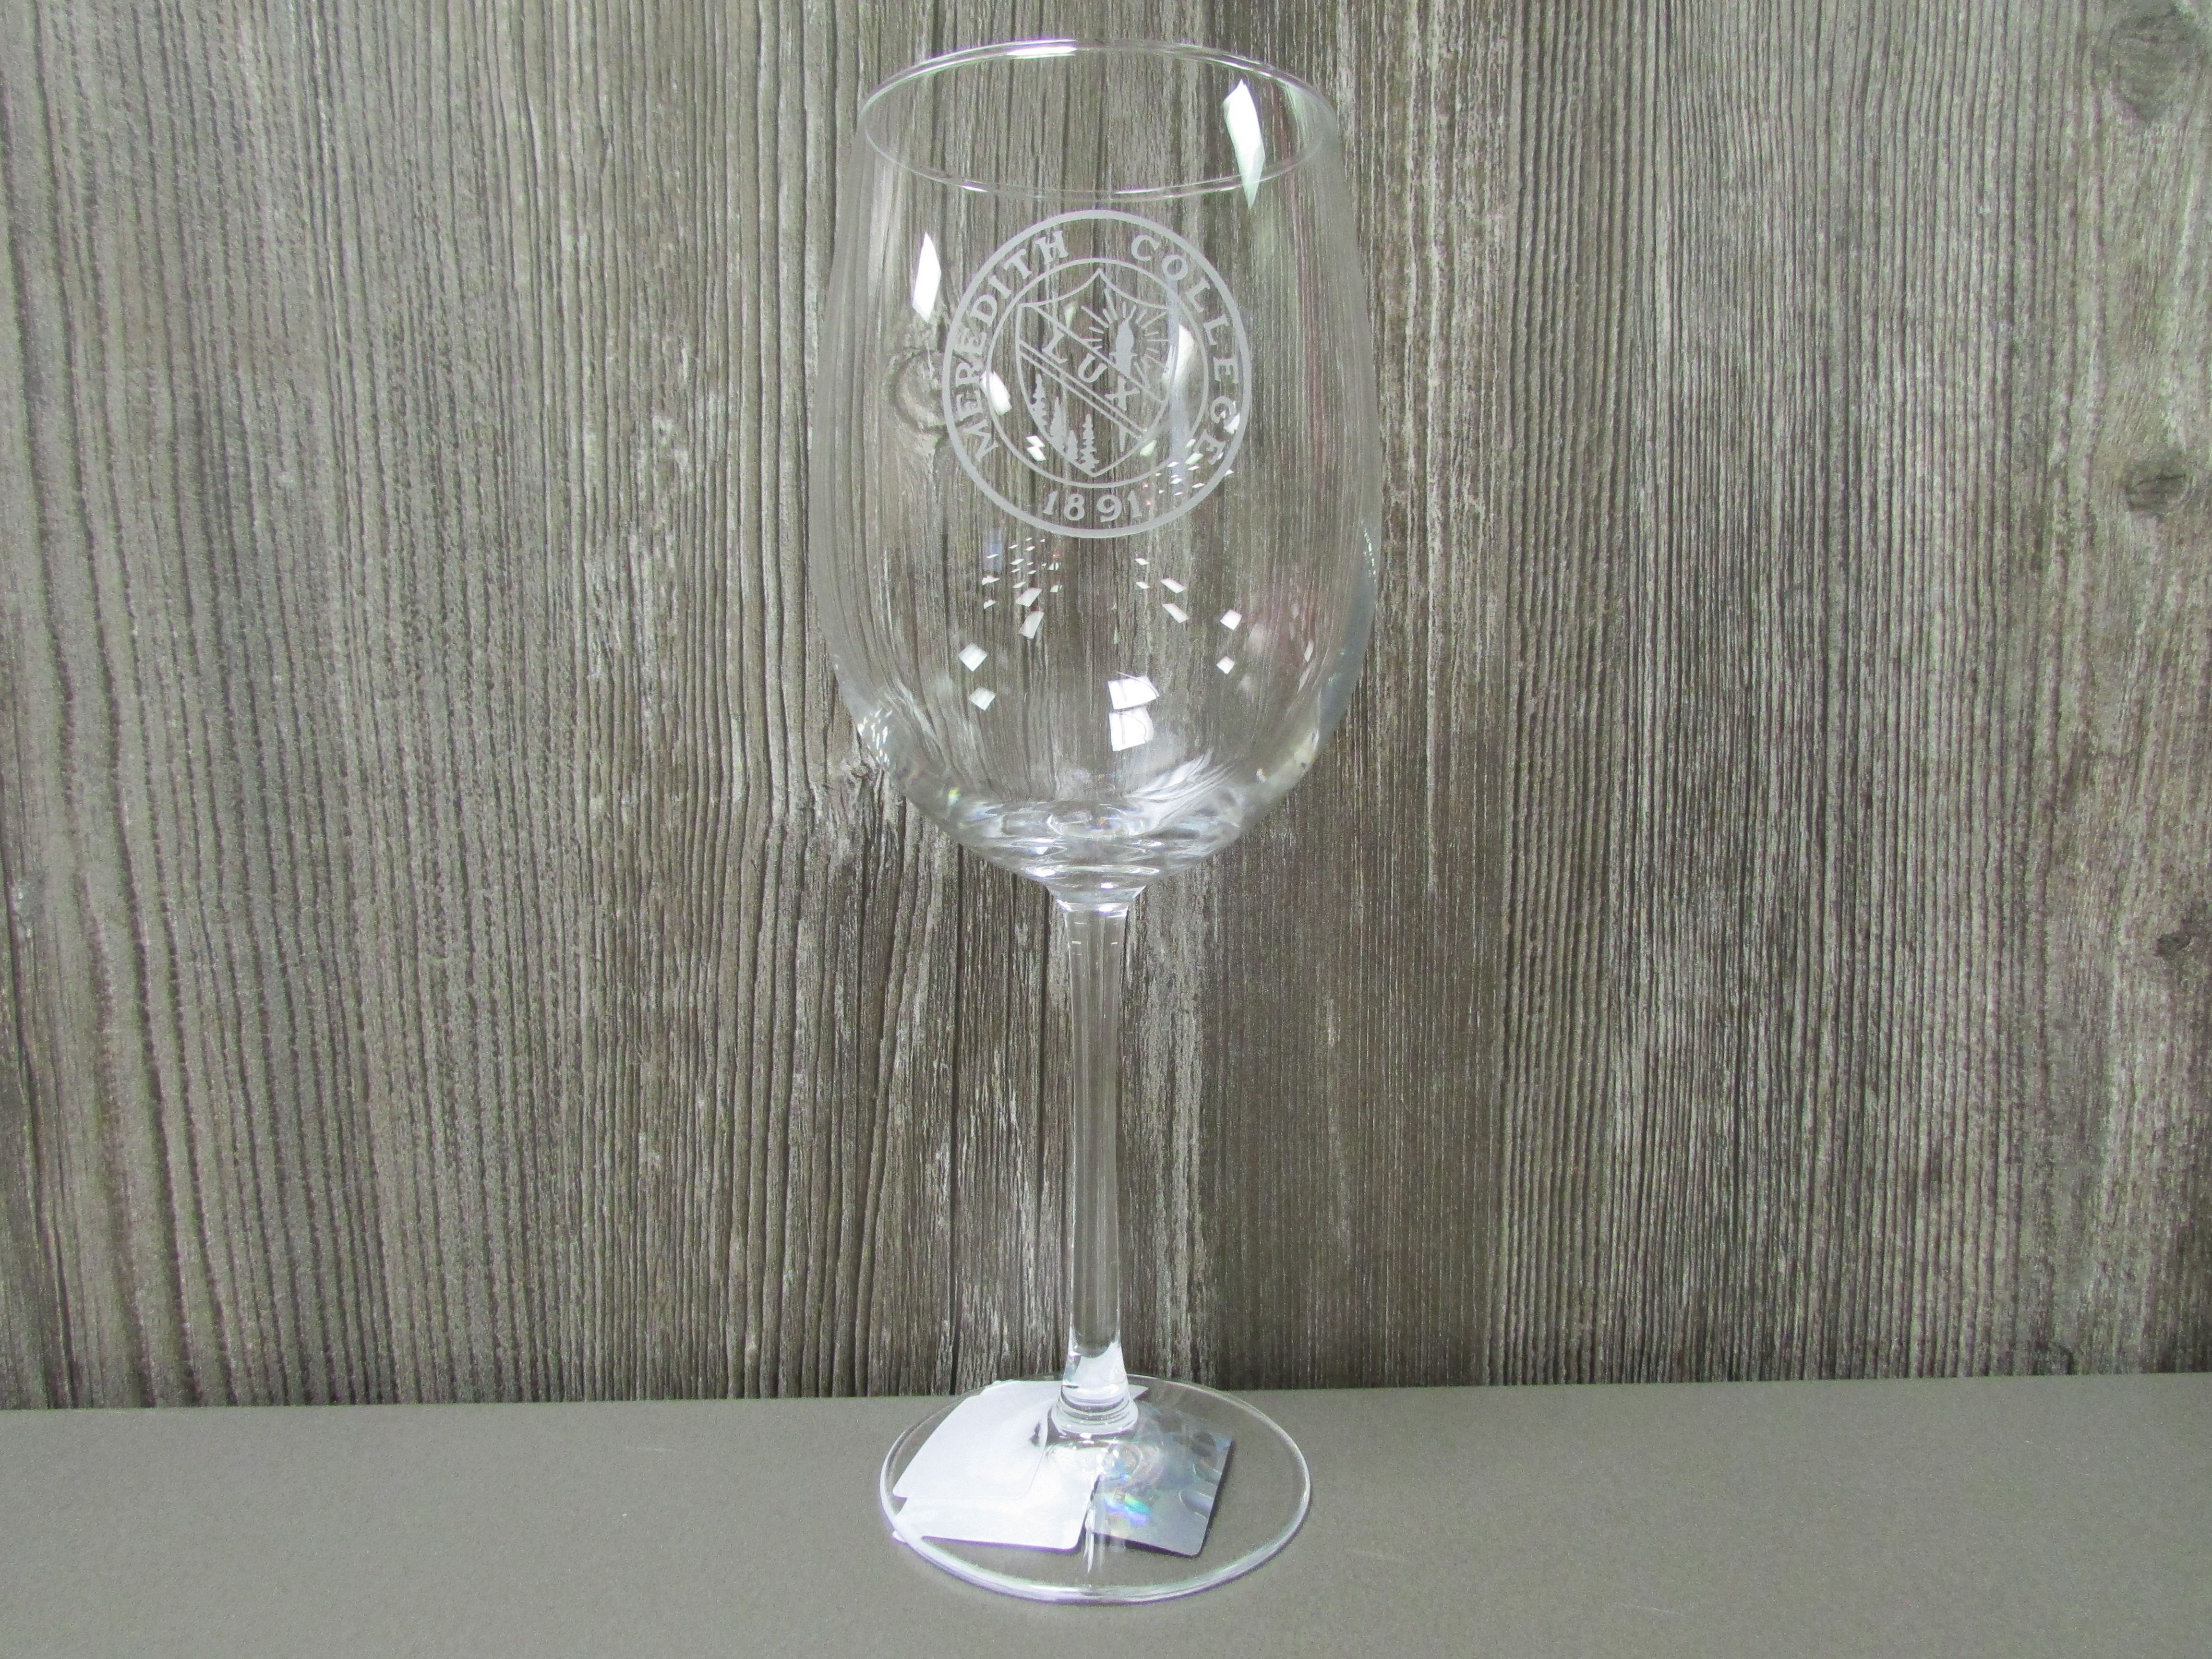 Image for the Wine Glass Meredith Seal product